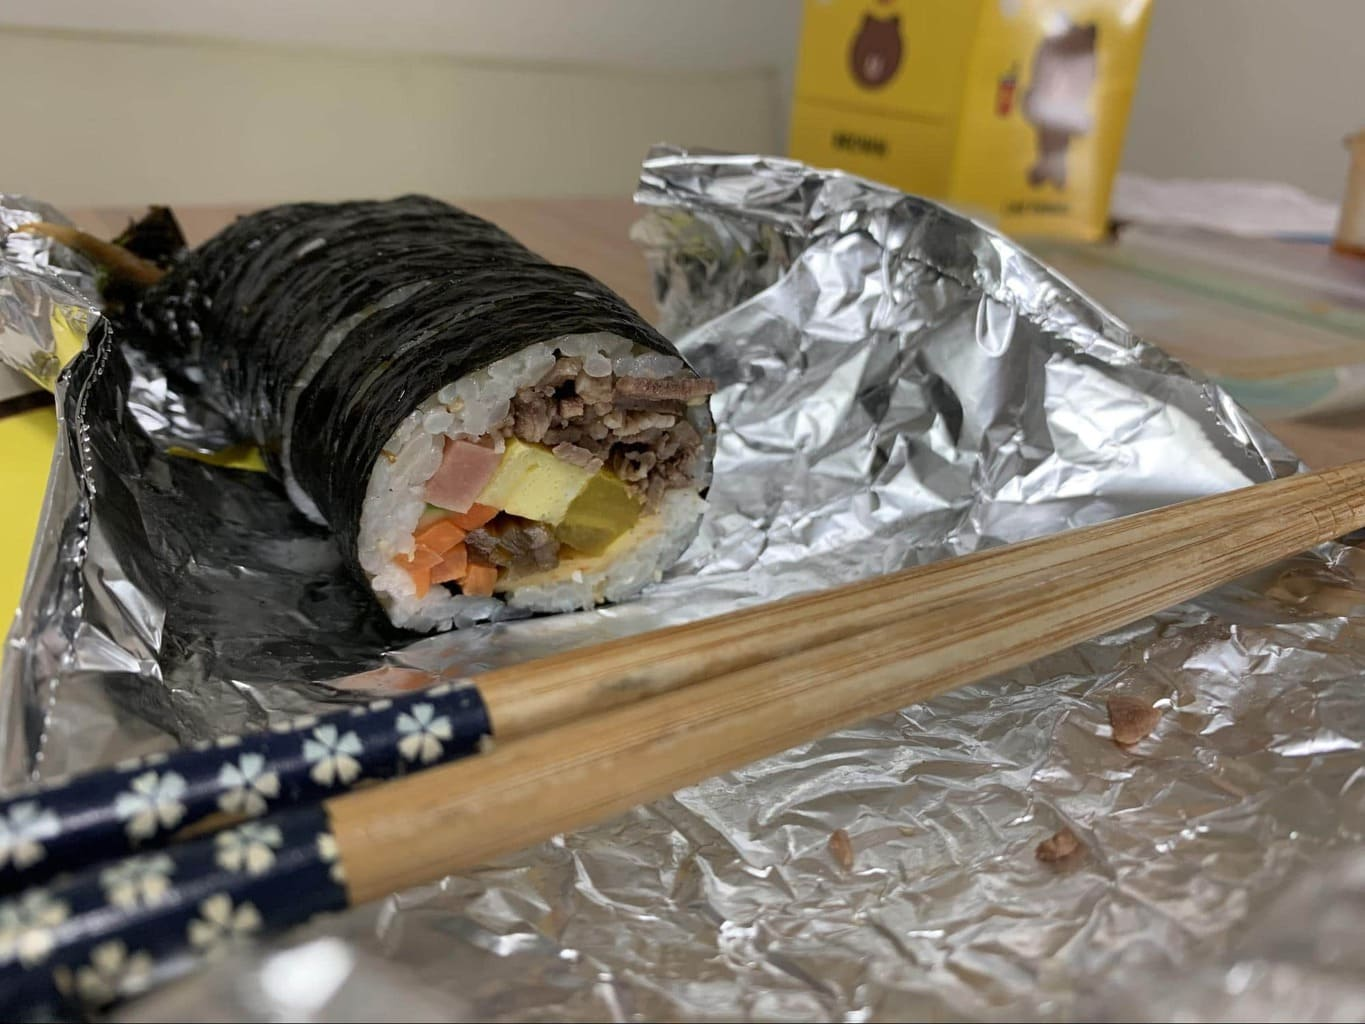 Normal kimbap